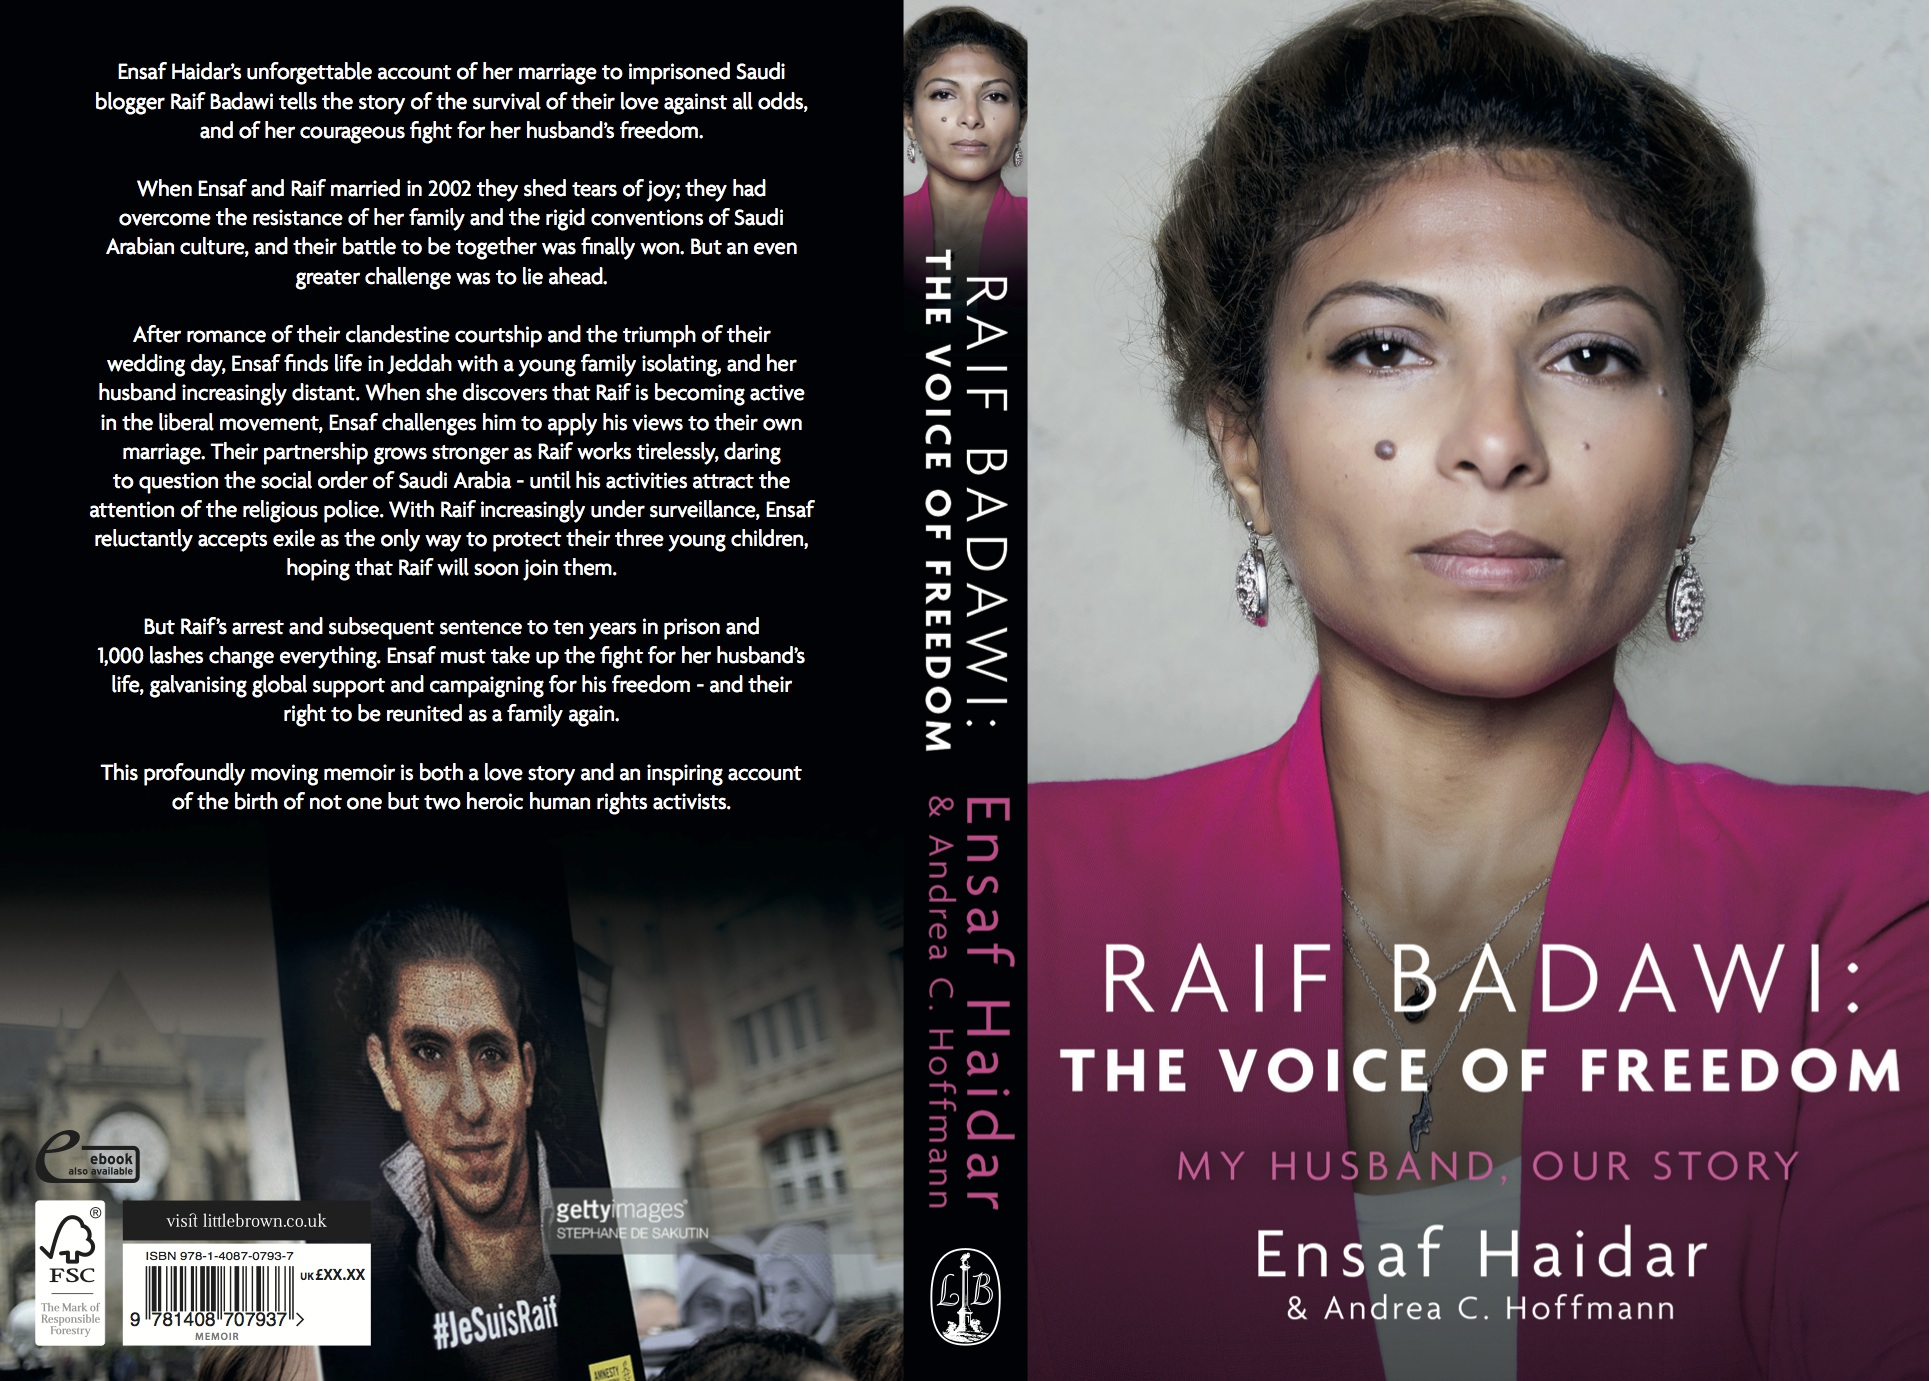 Raif Badawi : The Voice of Freedom